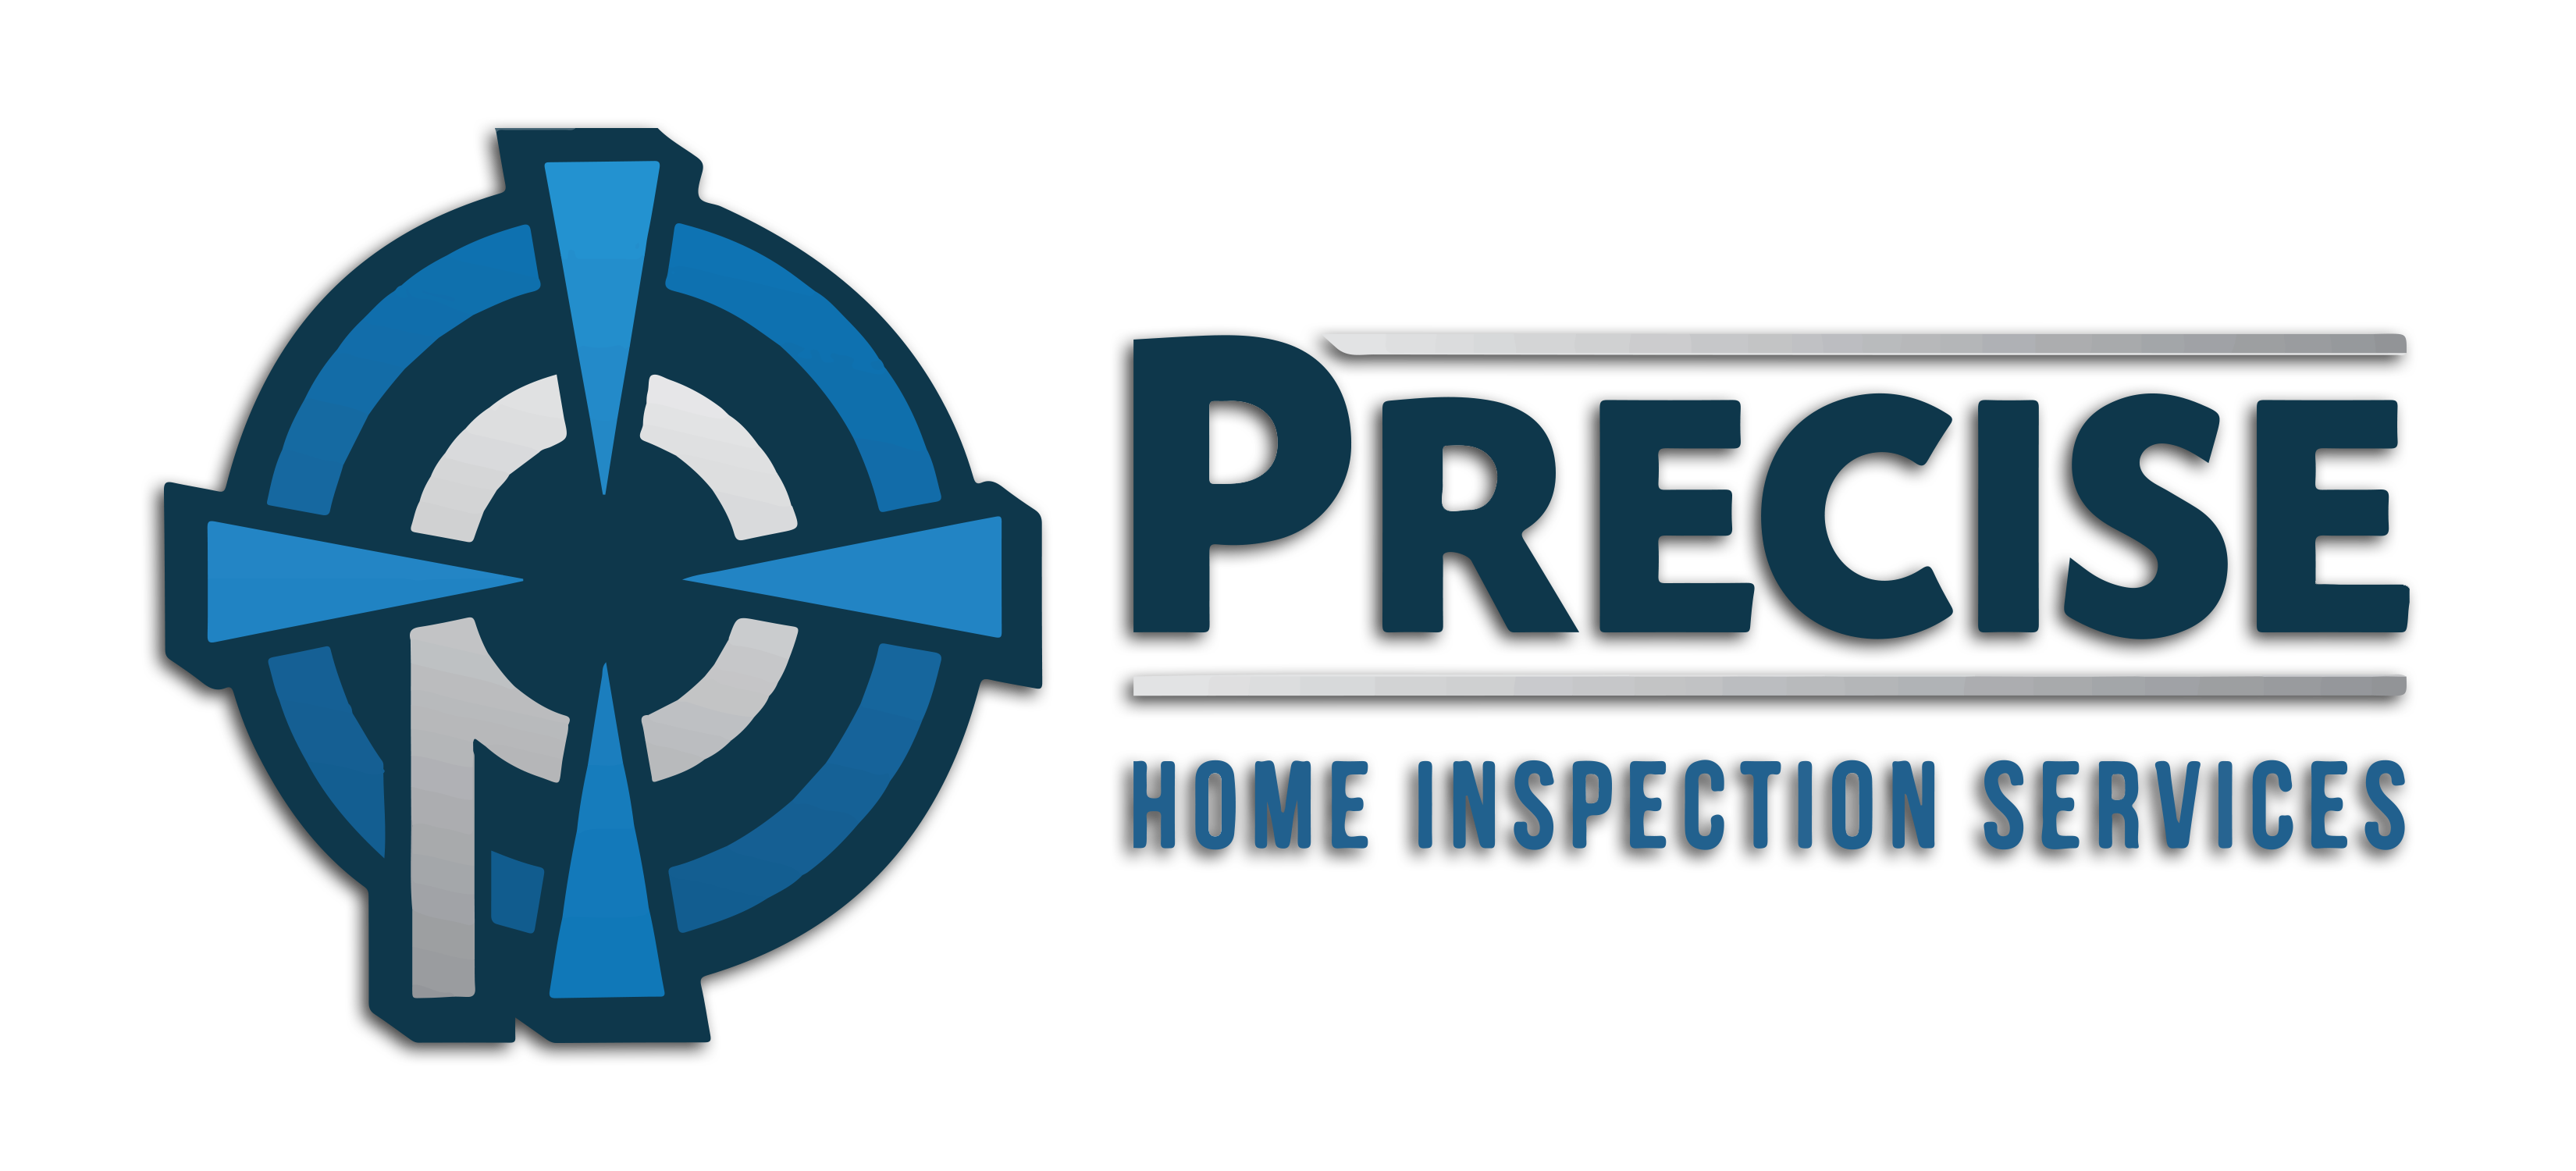 Precise Home Inspection Services